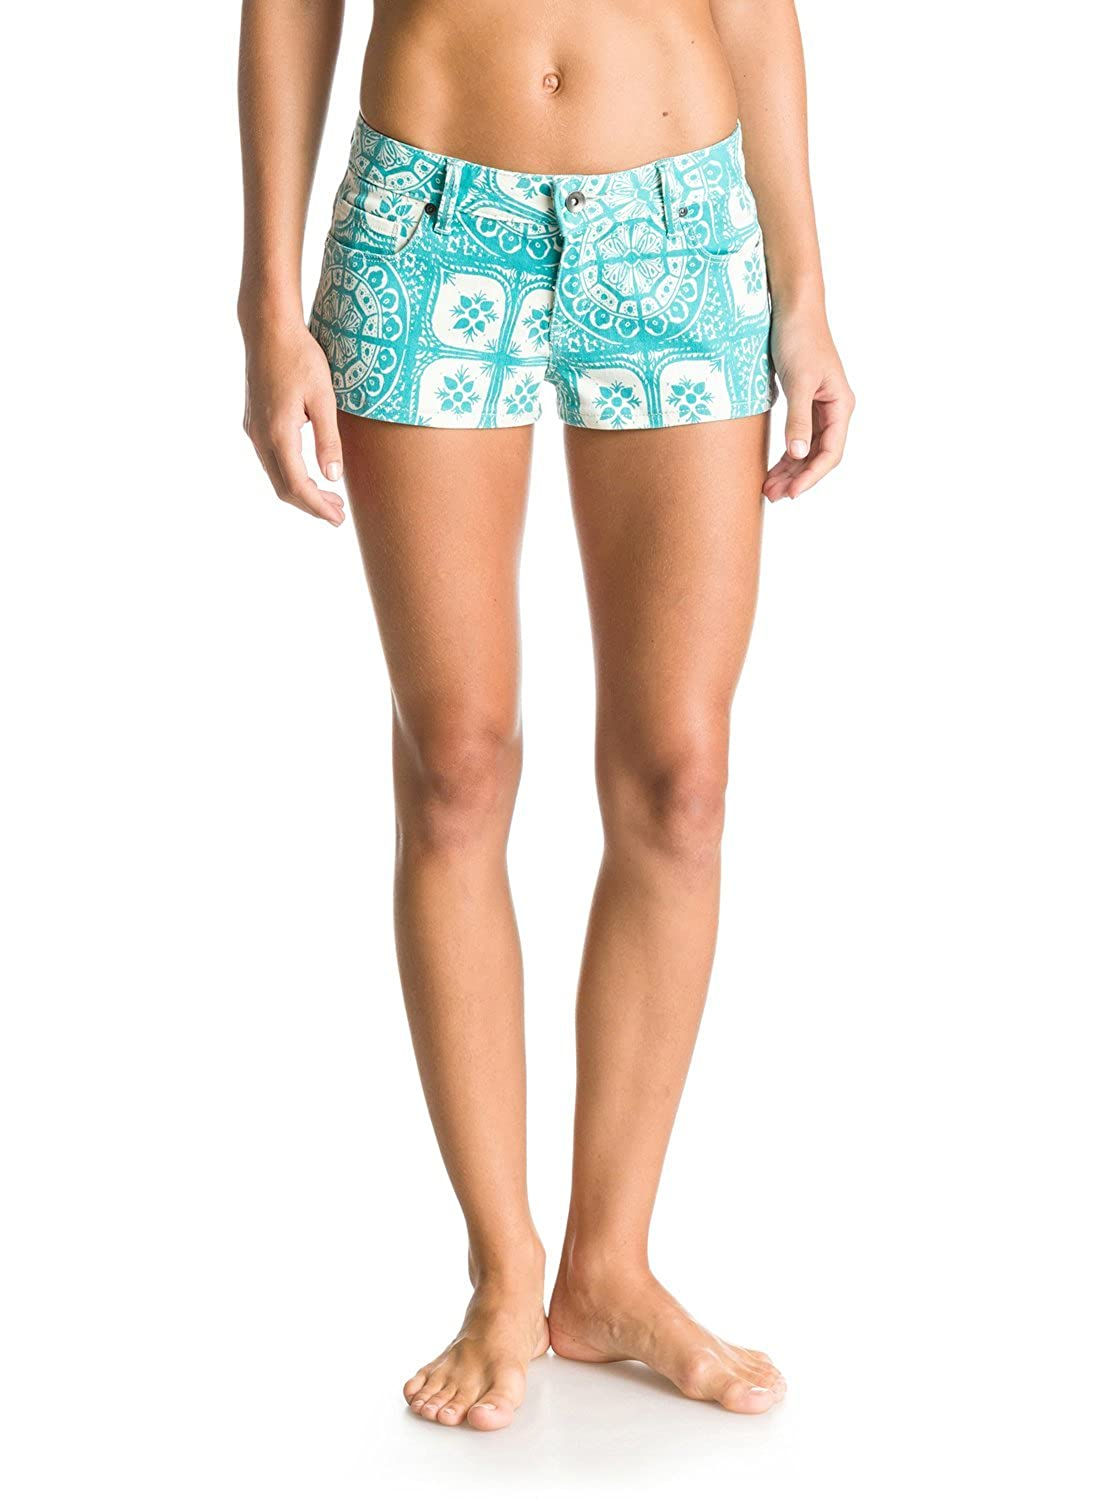 Roxy Womens Roxy Forever Print - Denim Shorts - Women - 29 - Green Baltic Blue Tides Of Way Blk6 29 ERJDS03047